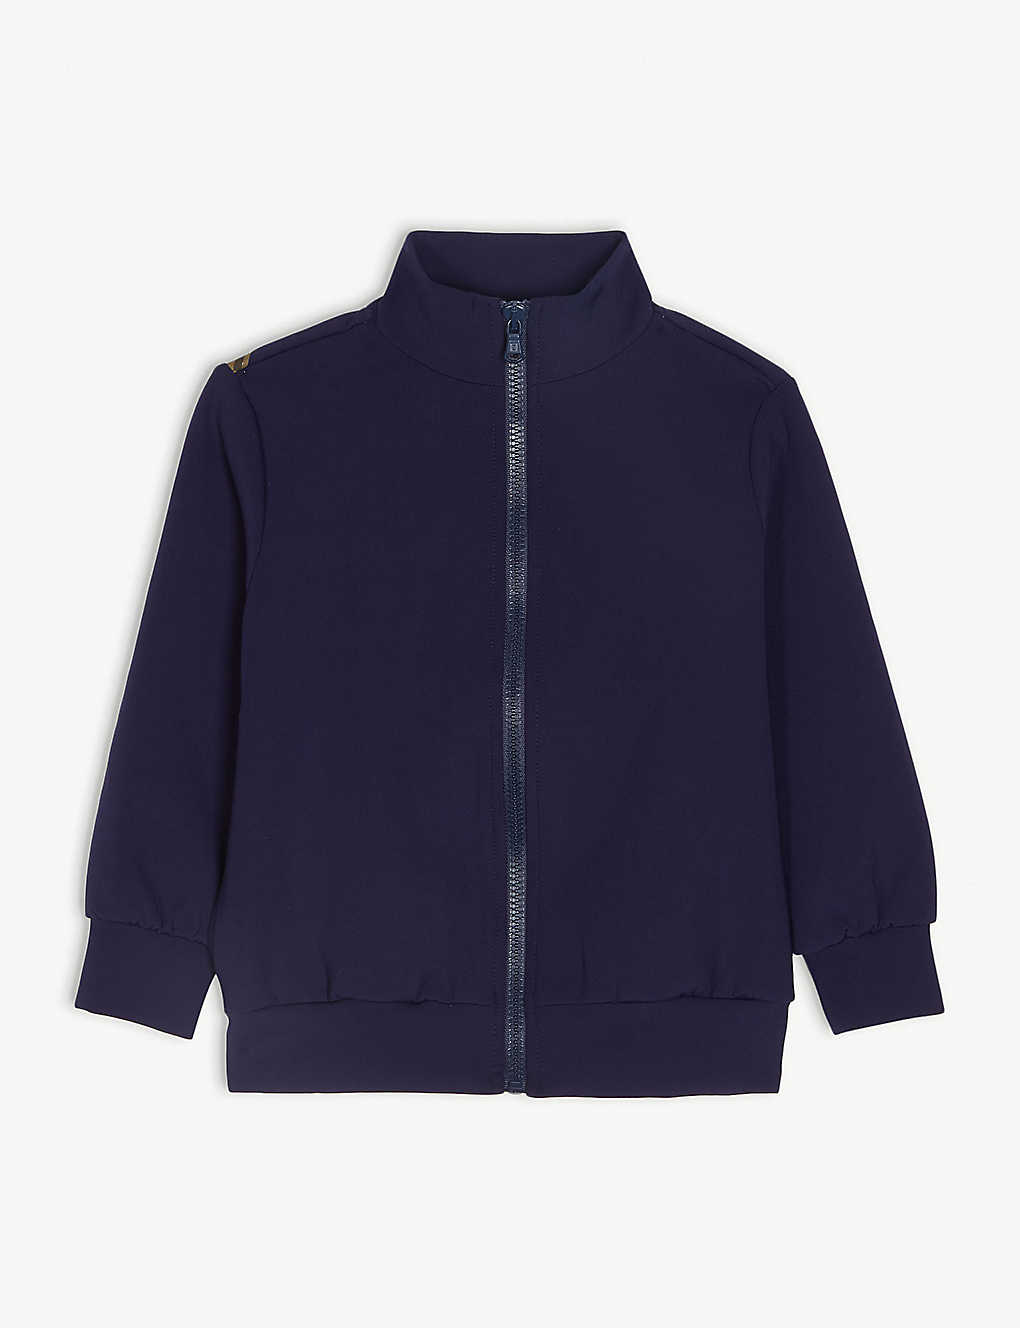 db1b5652f FENDI - Fendi x Fila zip jacket 4-14 years | Selfridges.com